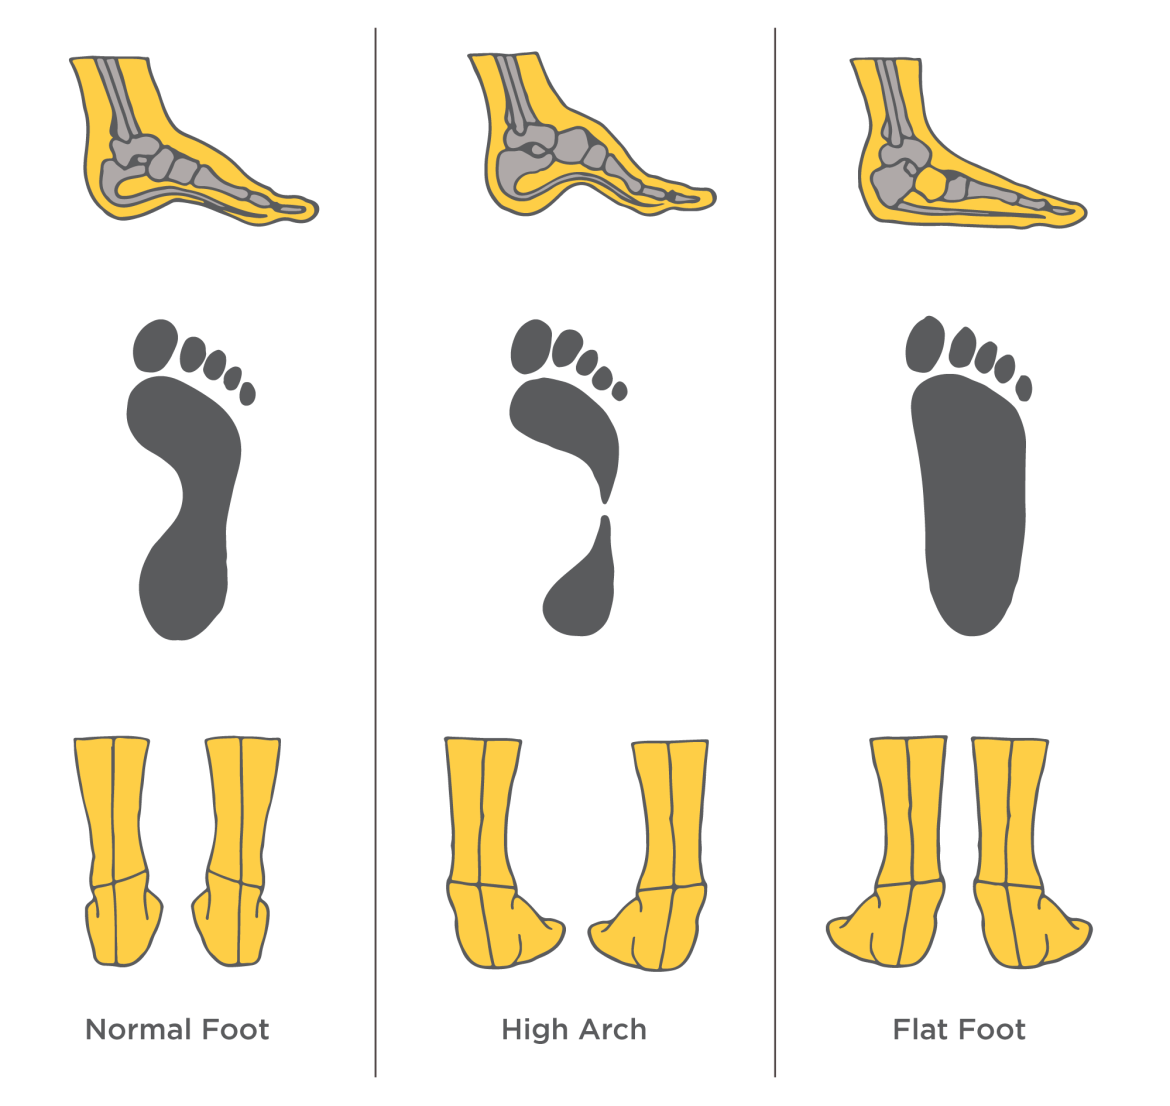 Ogden Clinic Foot Diagram.png